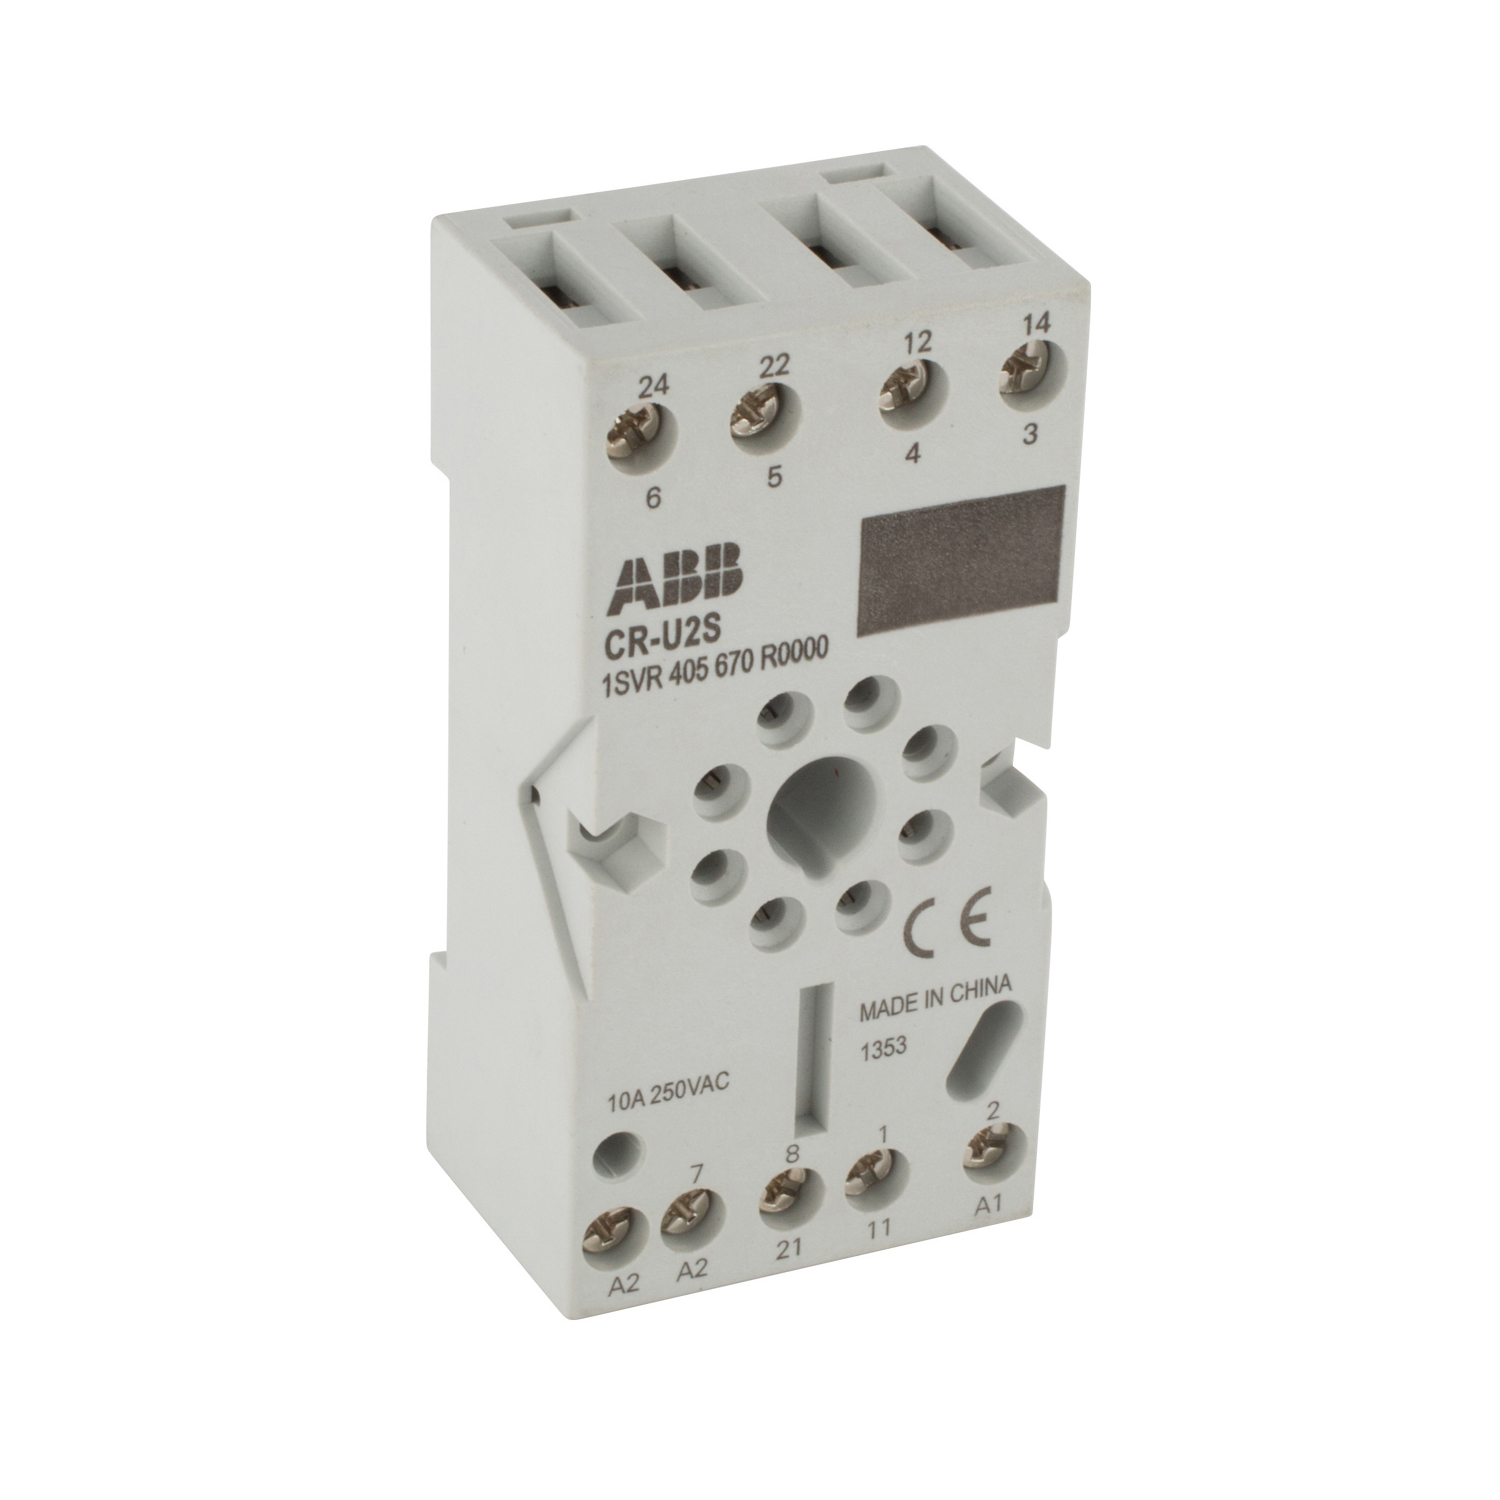 ABB,1SVR405670R0000,CR-U2S SOCKET FOR DPDT W/MODUL